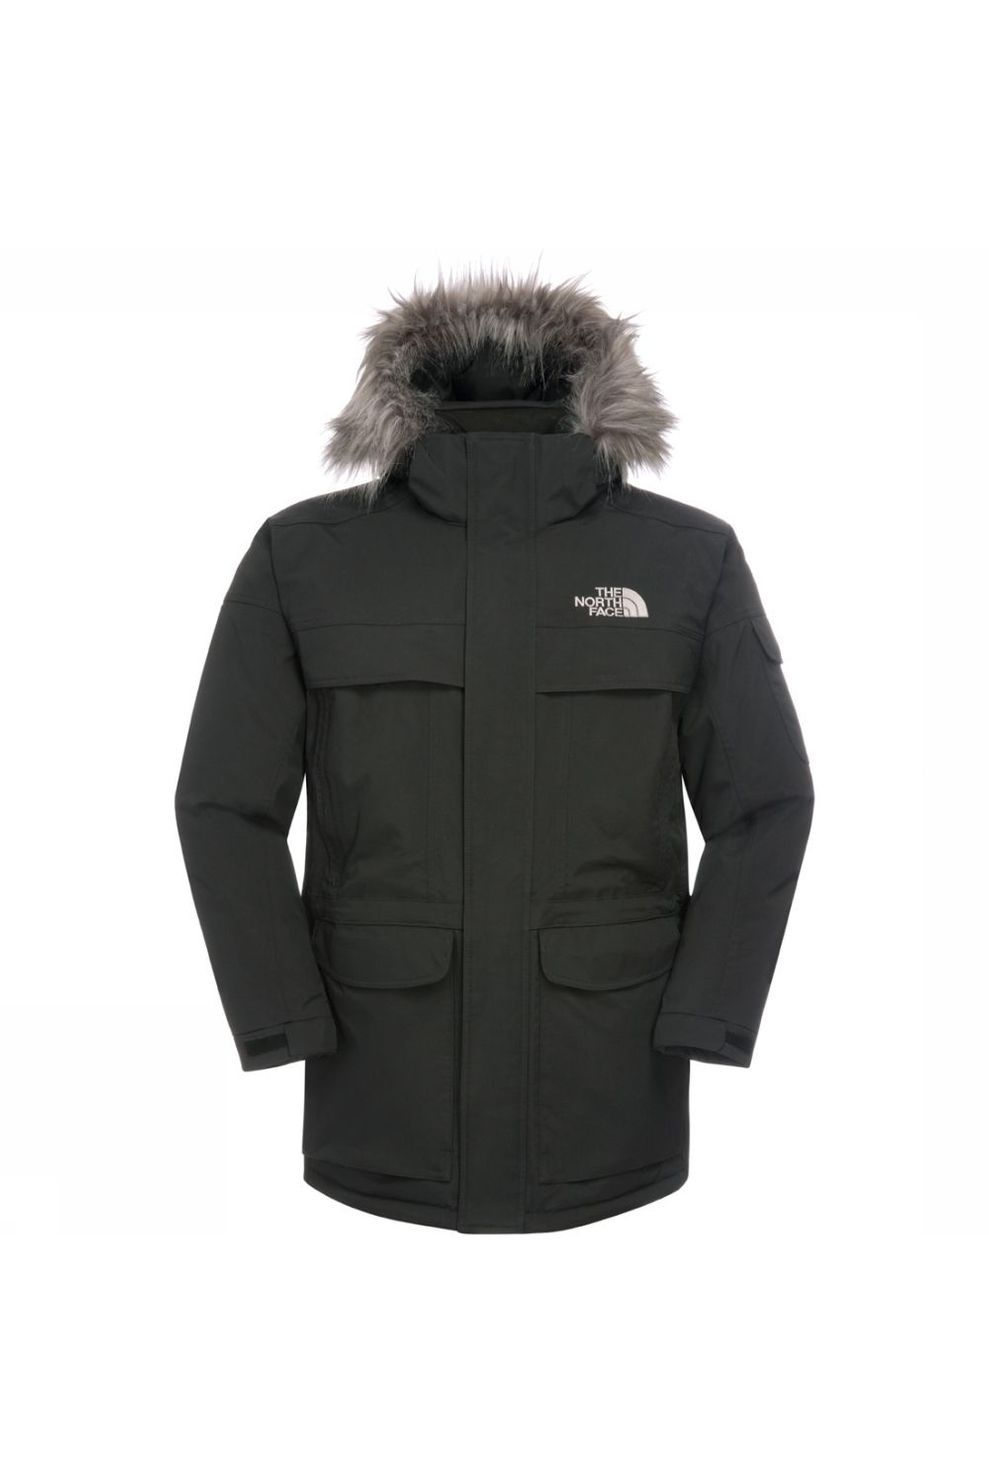 The North Face Mcmurdo Parka voor heren – Zwart – Maten: S, M, L, XL